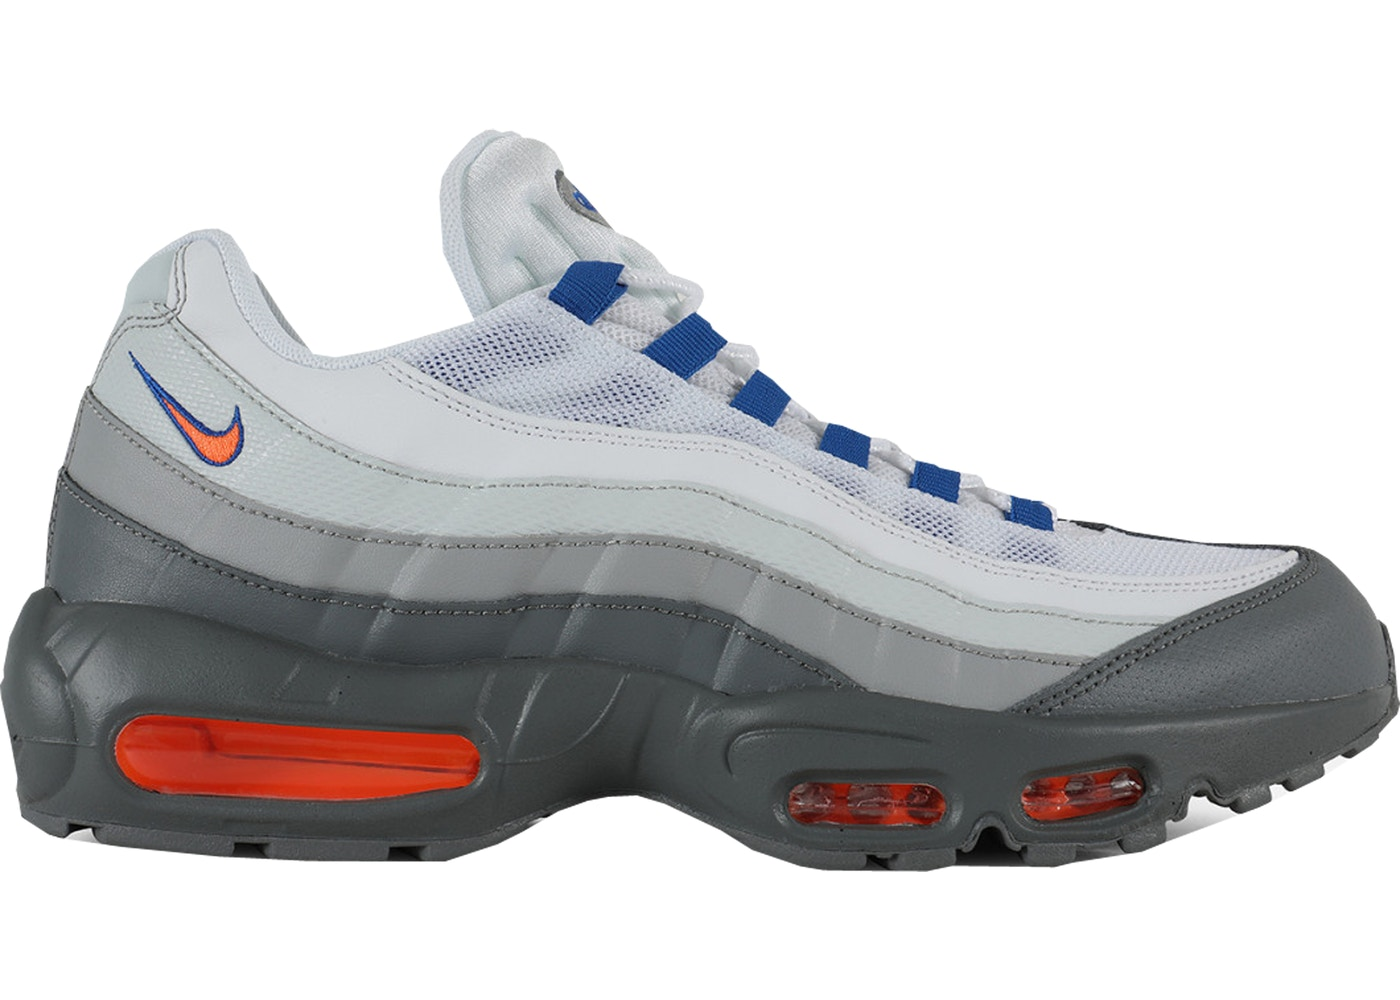 super popular 3096d 54e44 Air Max 95 Cool Grey Total Orange